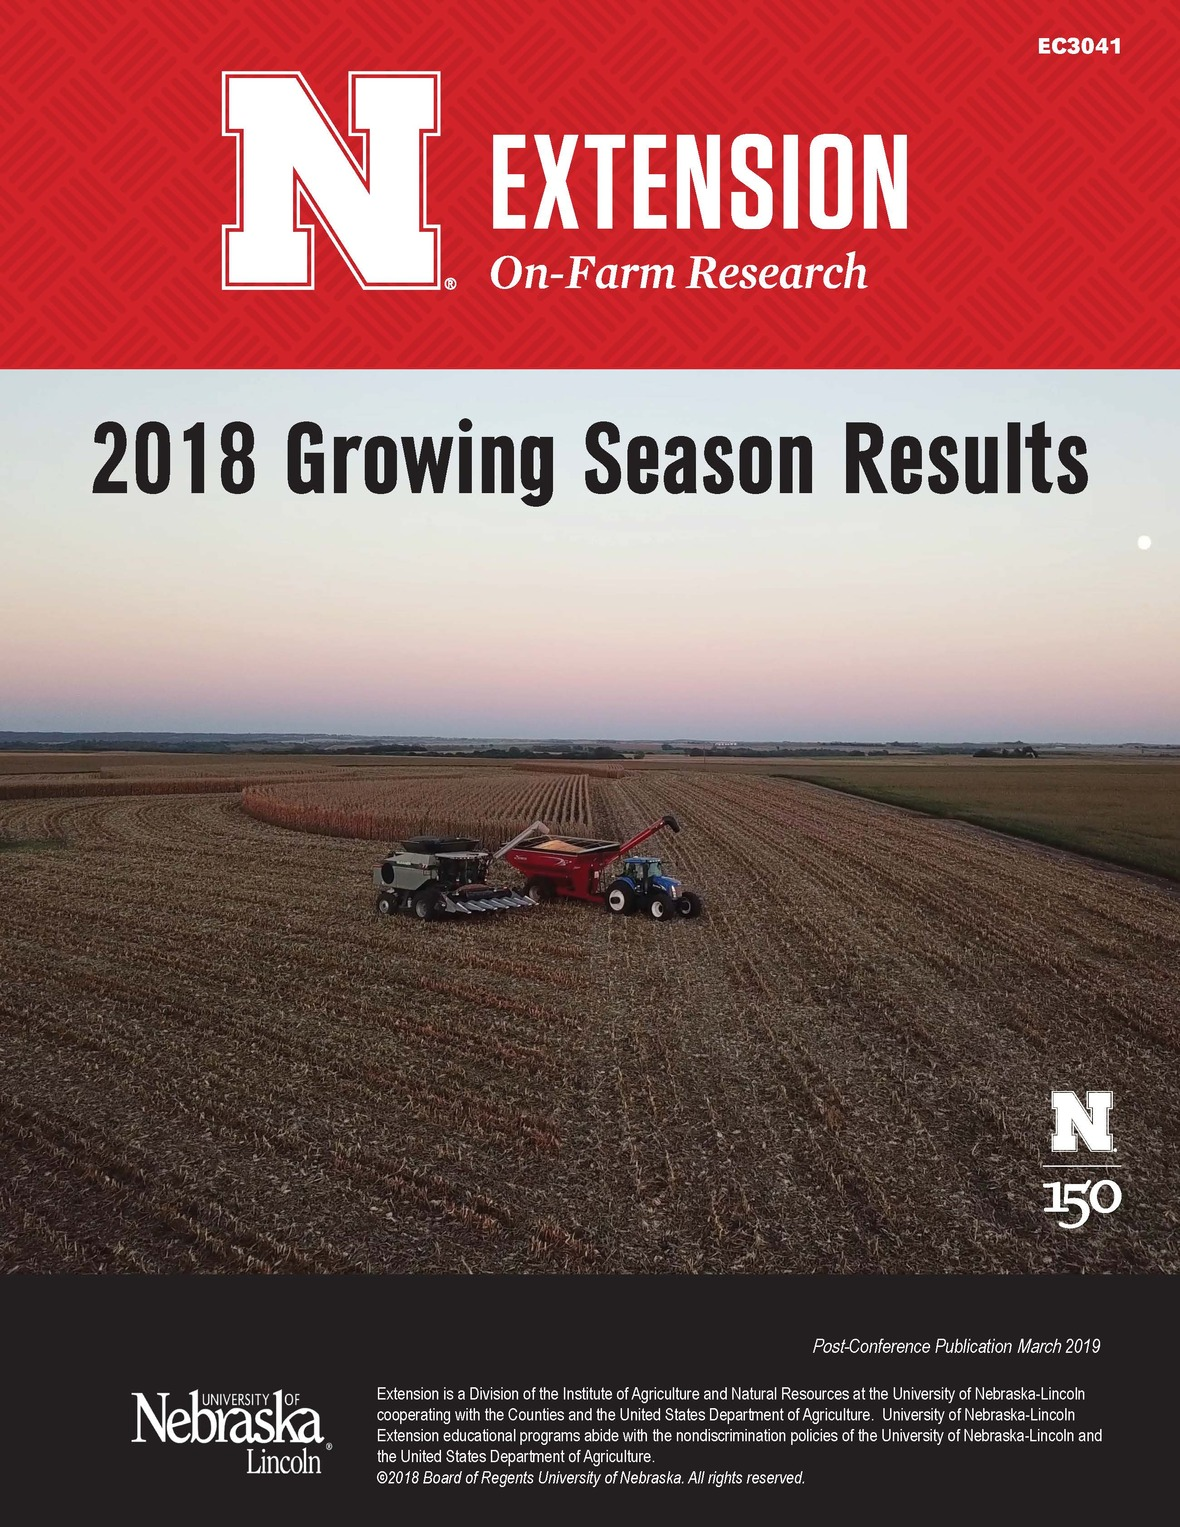 2018GrowingSeasonResults postconference EC3041 FrontCover